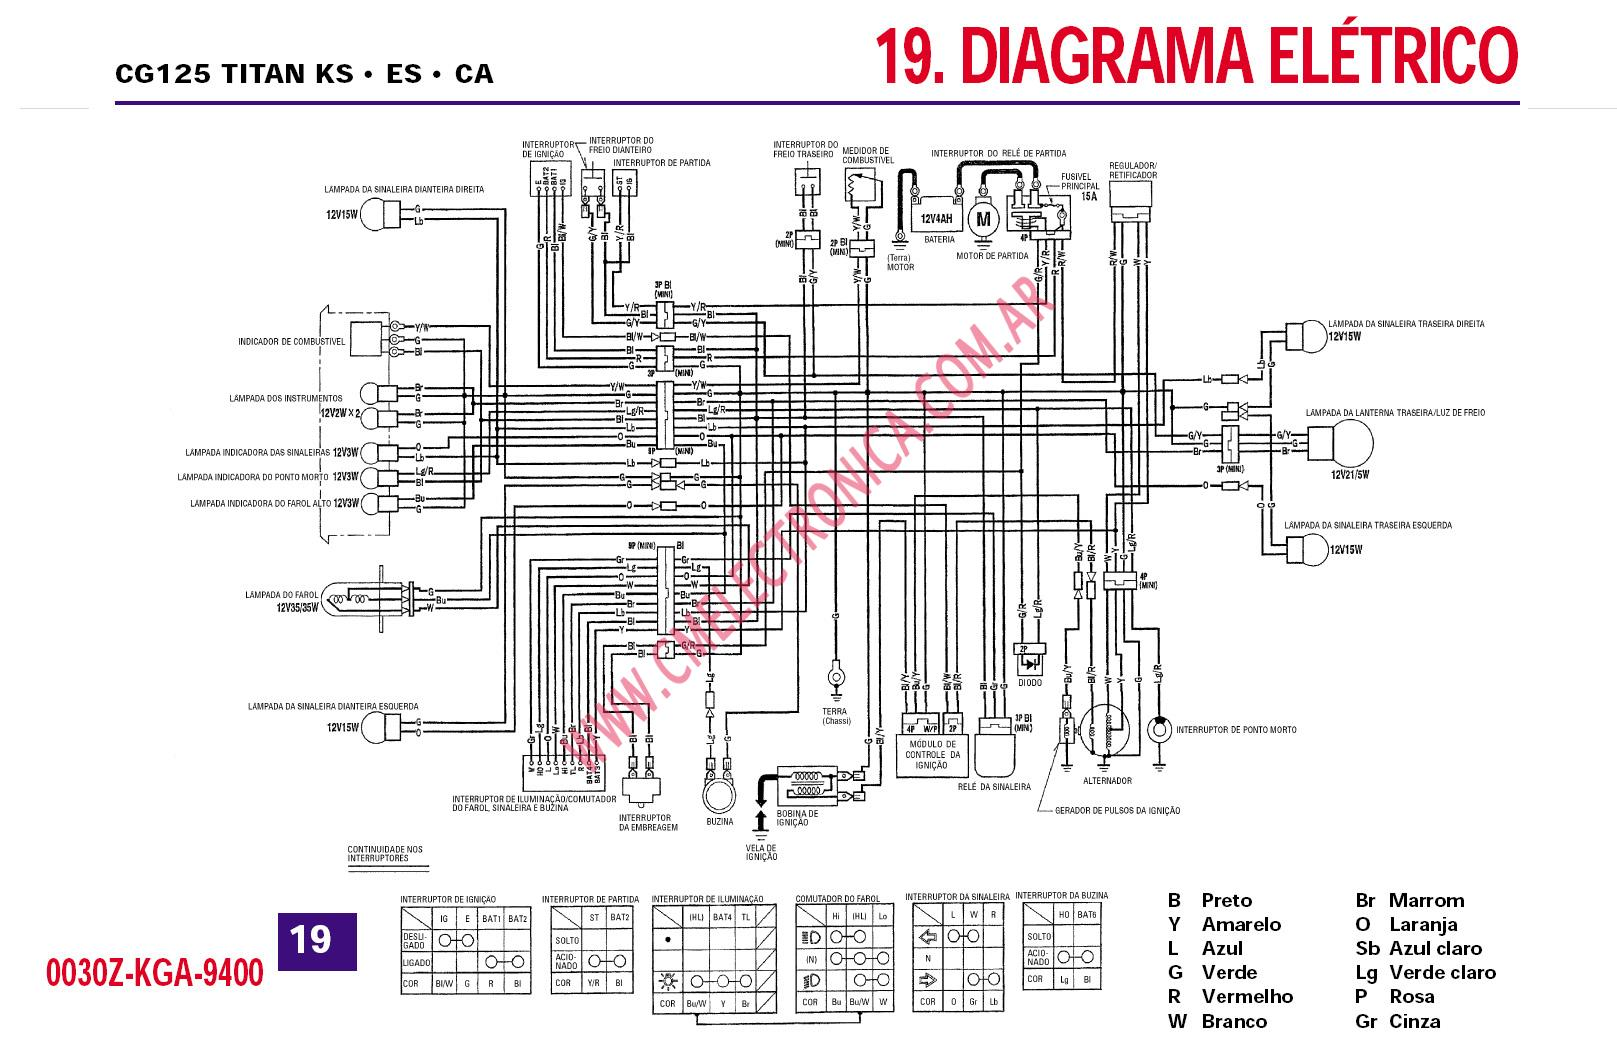 Honda Cg 125 Cdi Wiring Diagram 31 Images 1983 Shadow 750 Cg125 Titan Ks Es Motorcycle 28